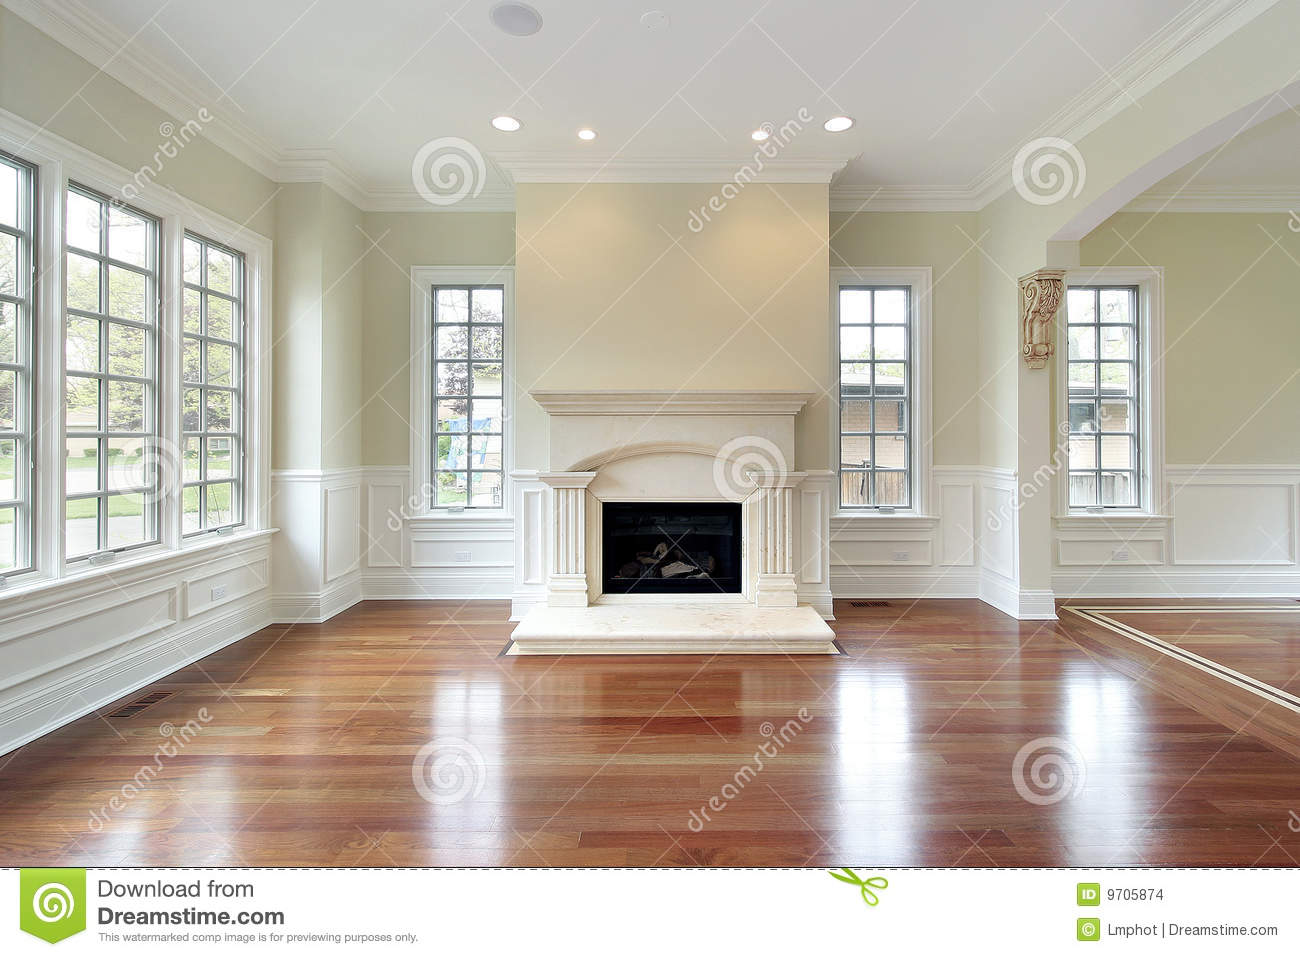 Living room with fireplace stock photo. Image of floor - 9705874